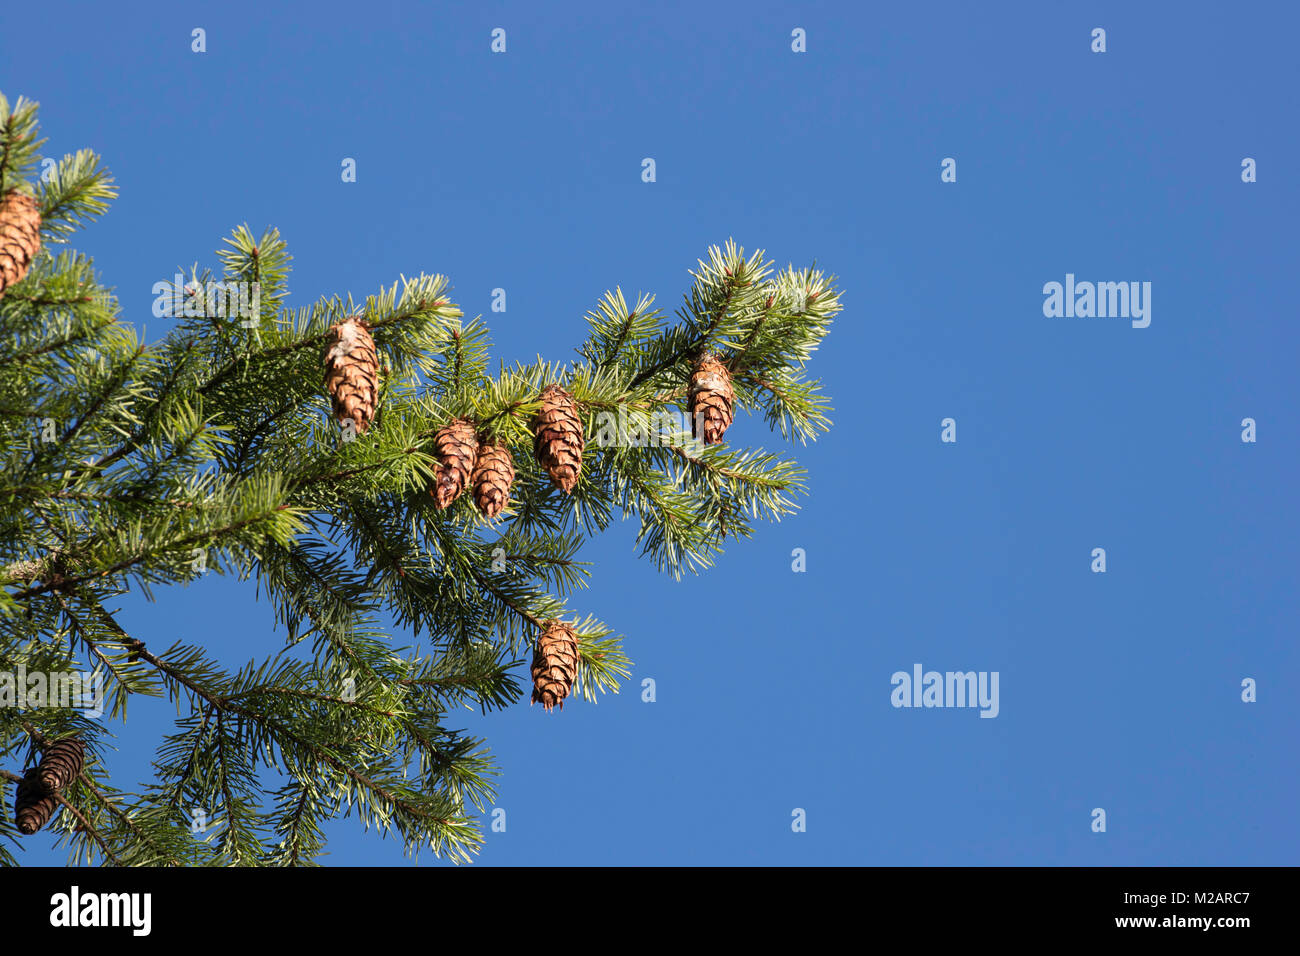 Cones on a fir tree with a blue sky behind - Stock Image